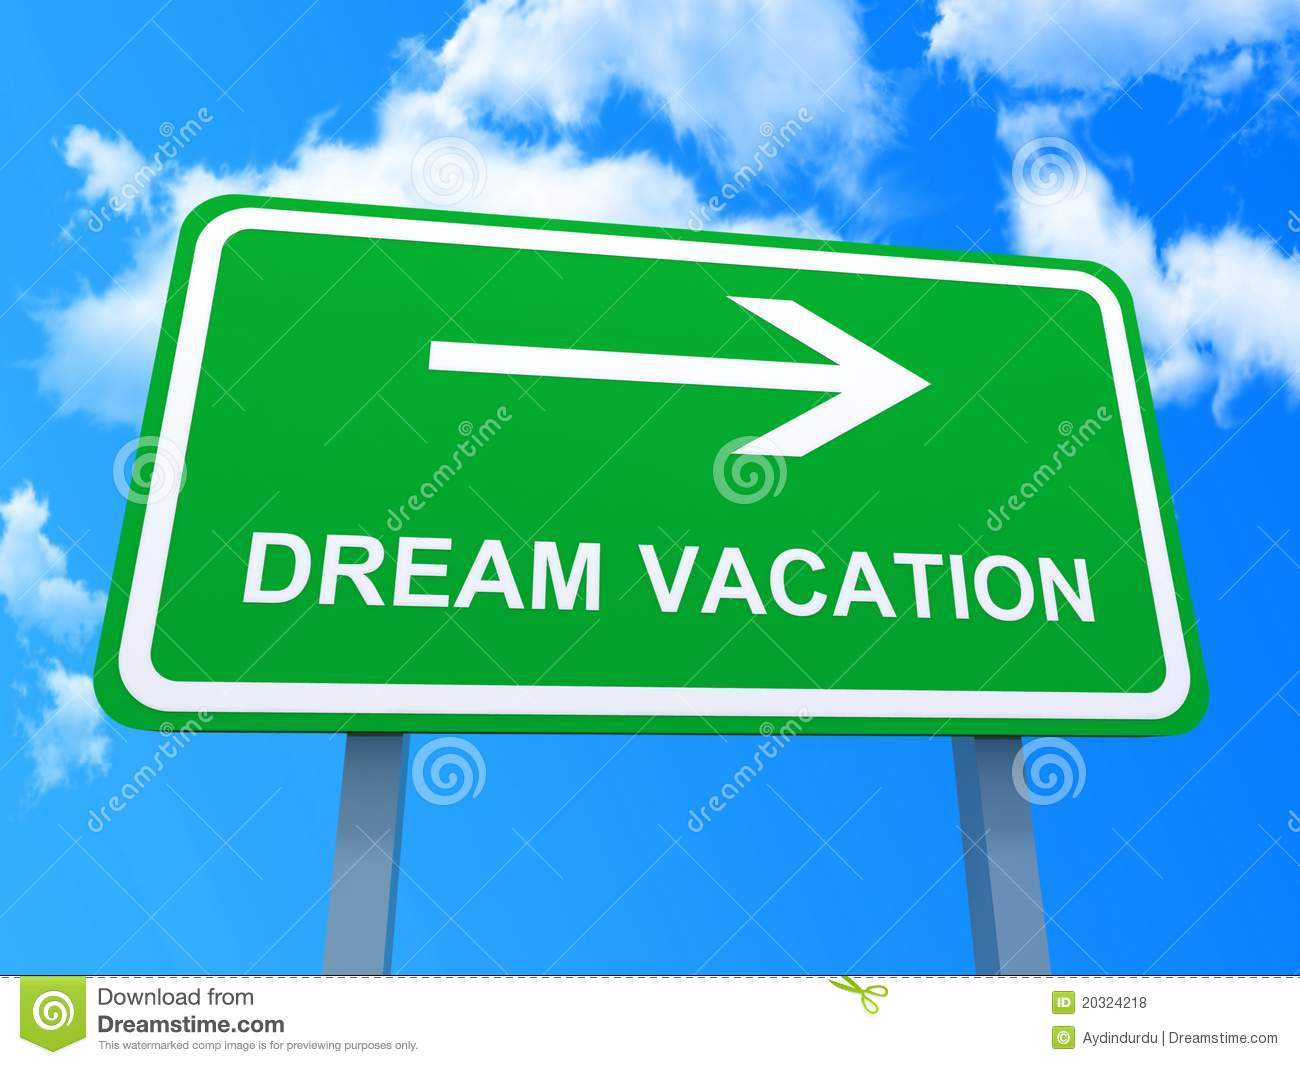 Conceptual view of green directional dream vacation sign with blue sky ...